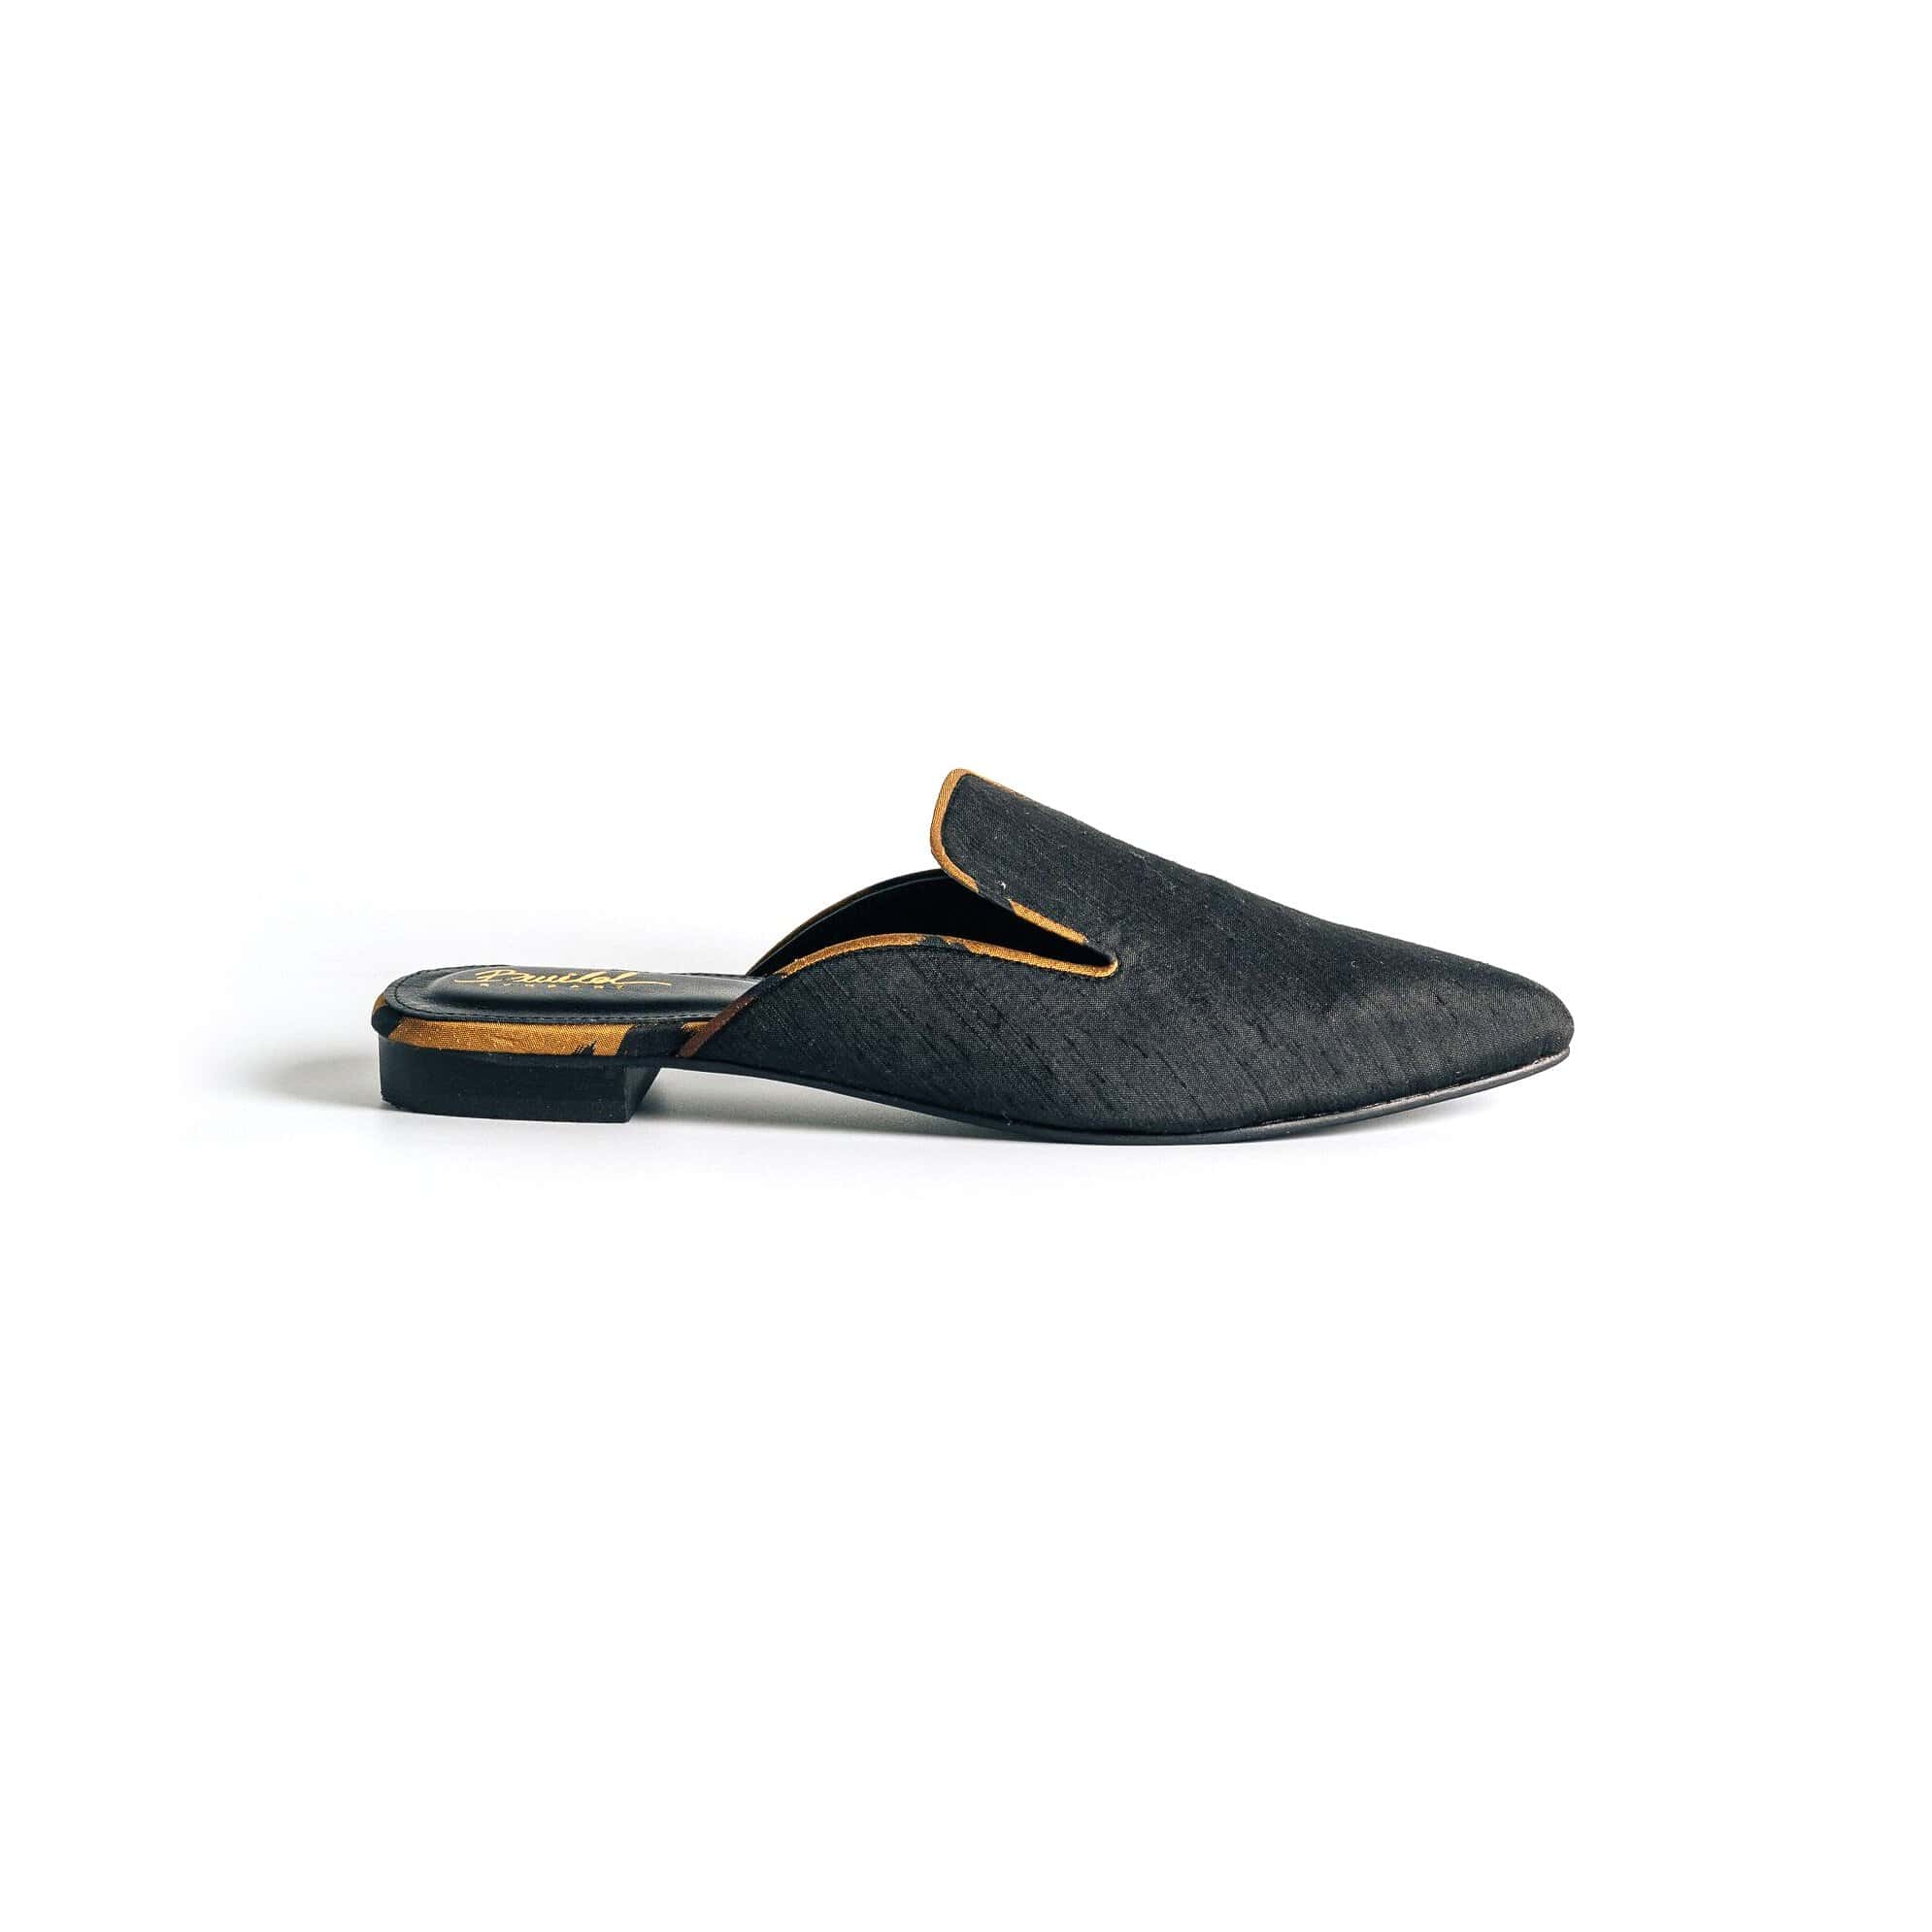 Wild in the city Mule Slippers - Black/Courage Amber - BWILD byHeart